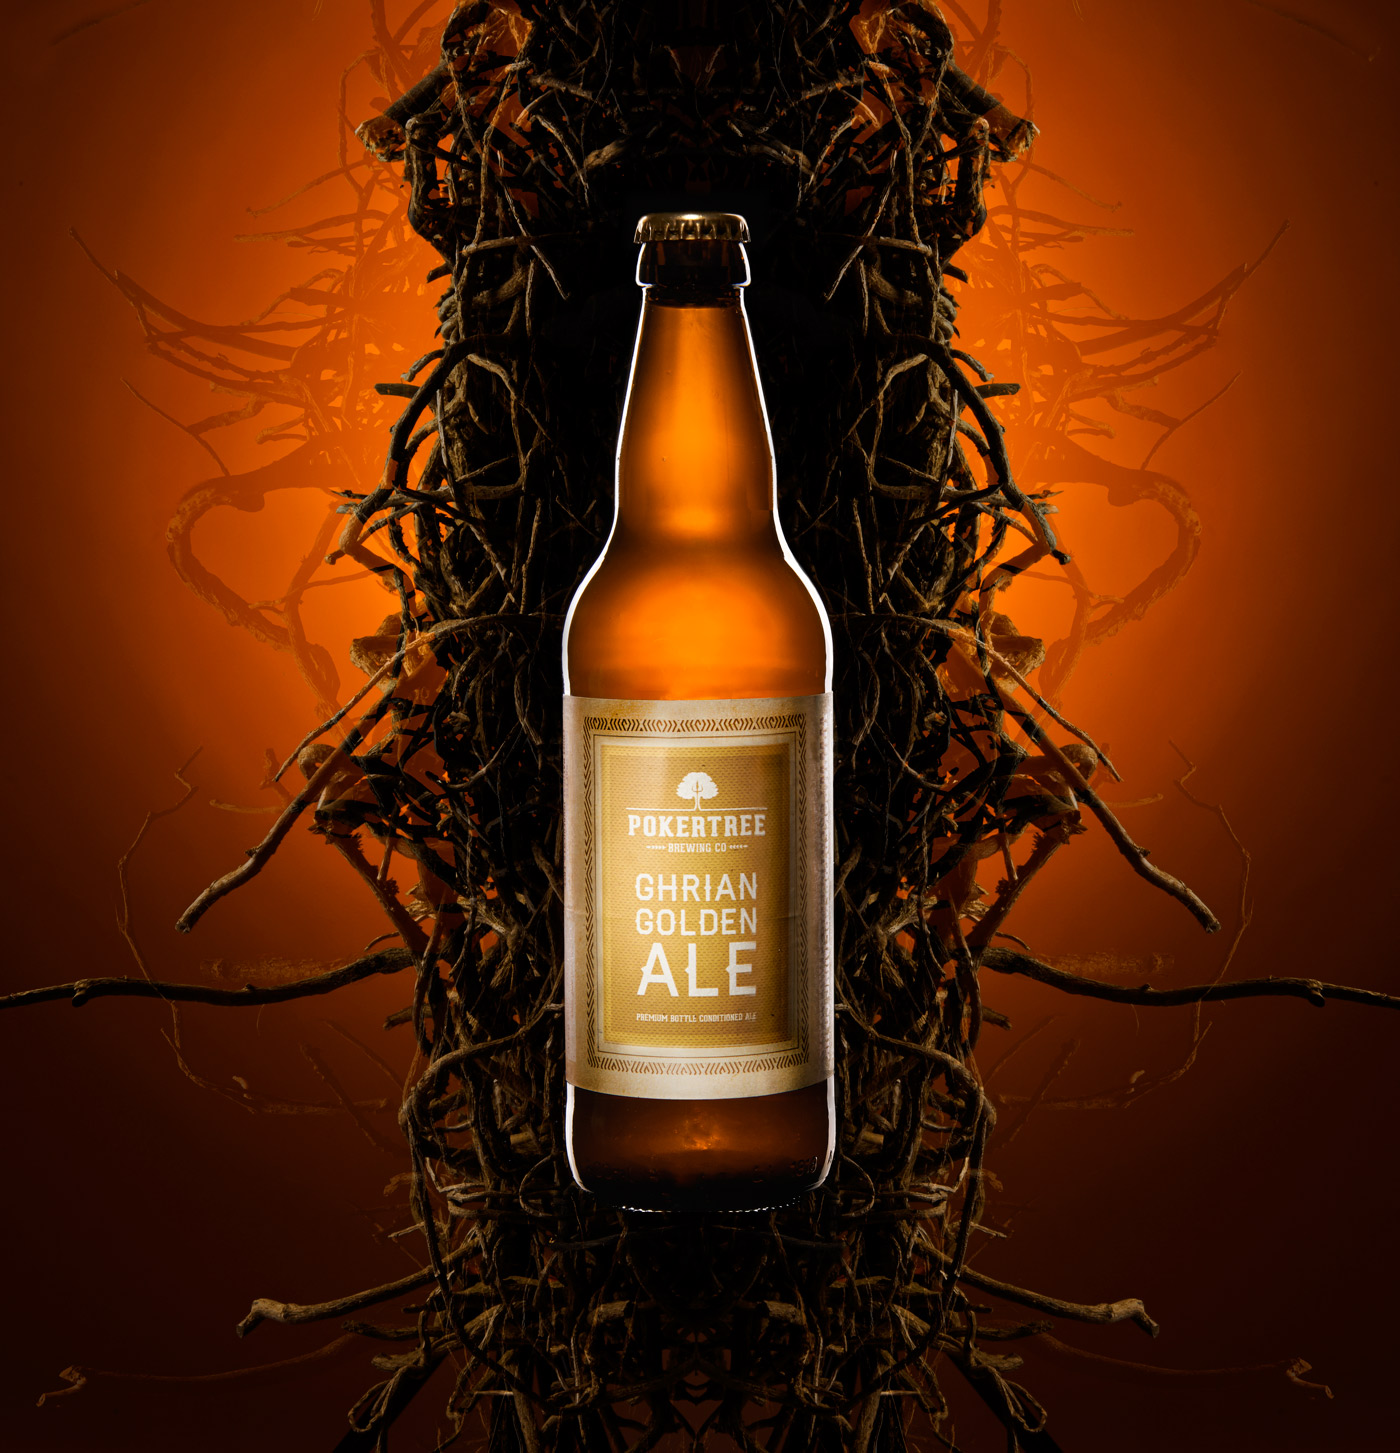 Pokertree Brewing Company by White Cloud Photographic